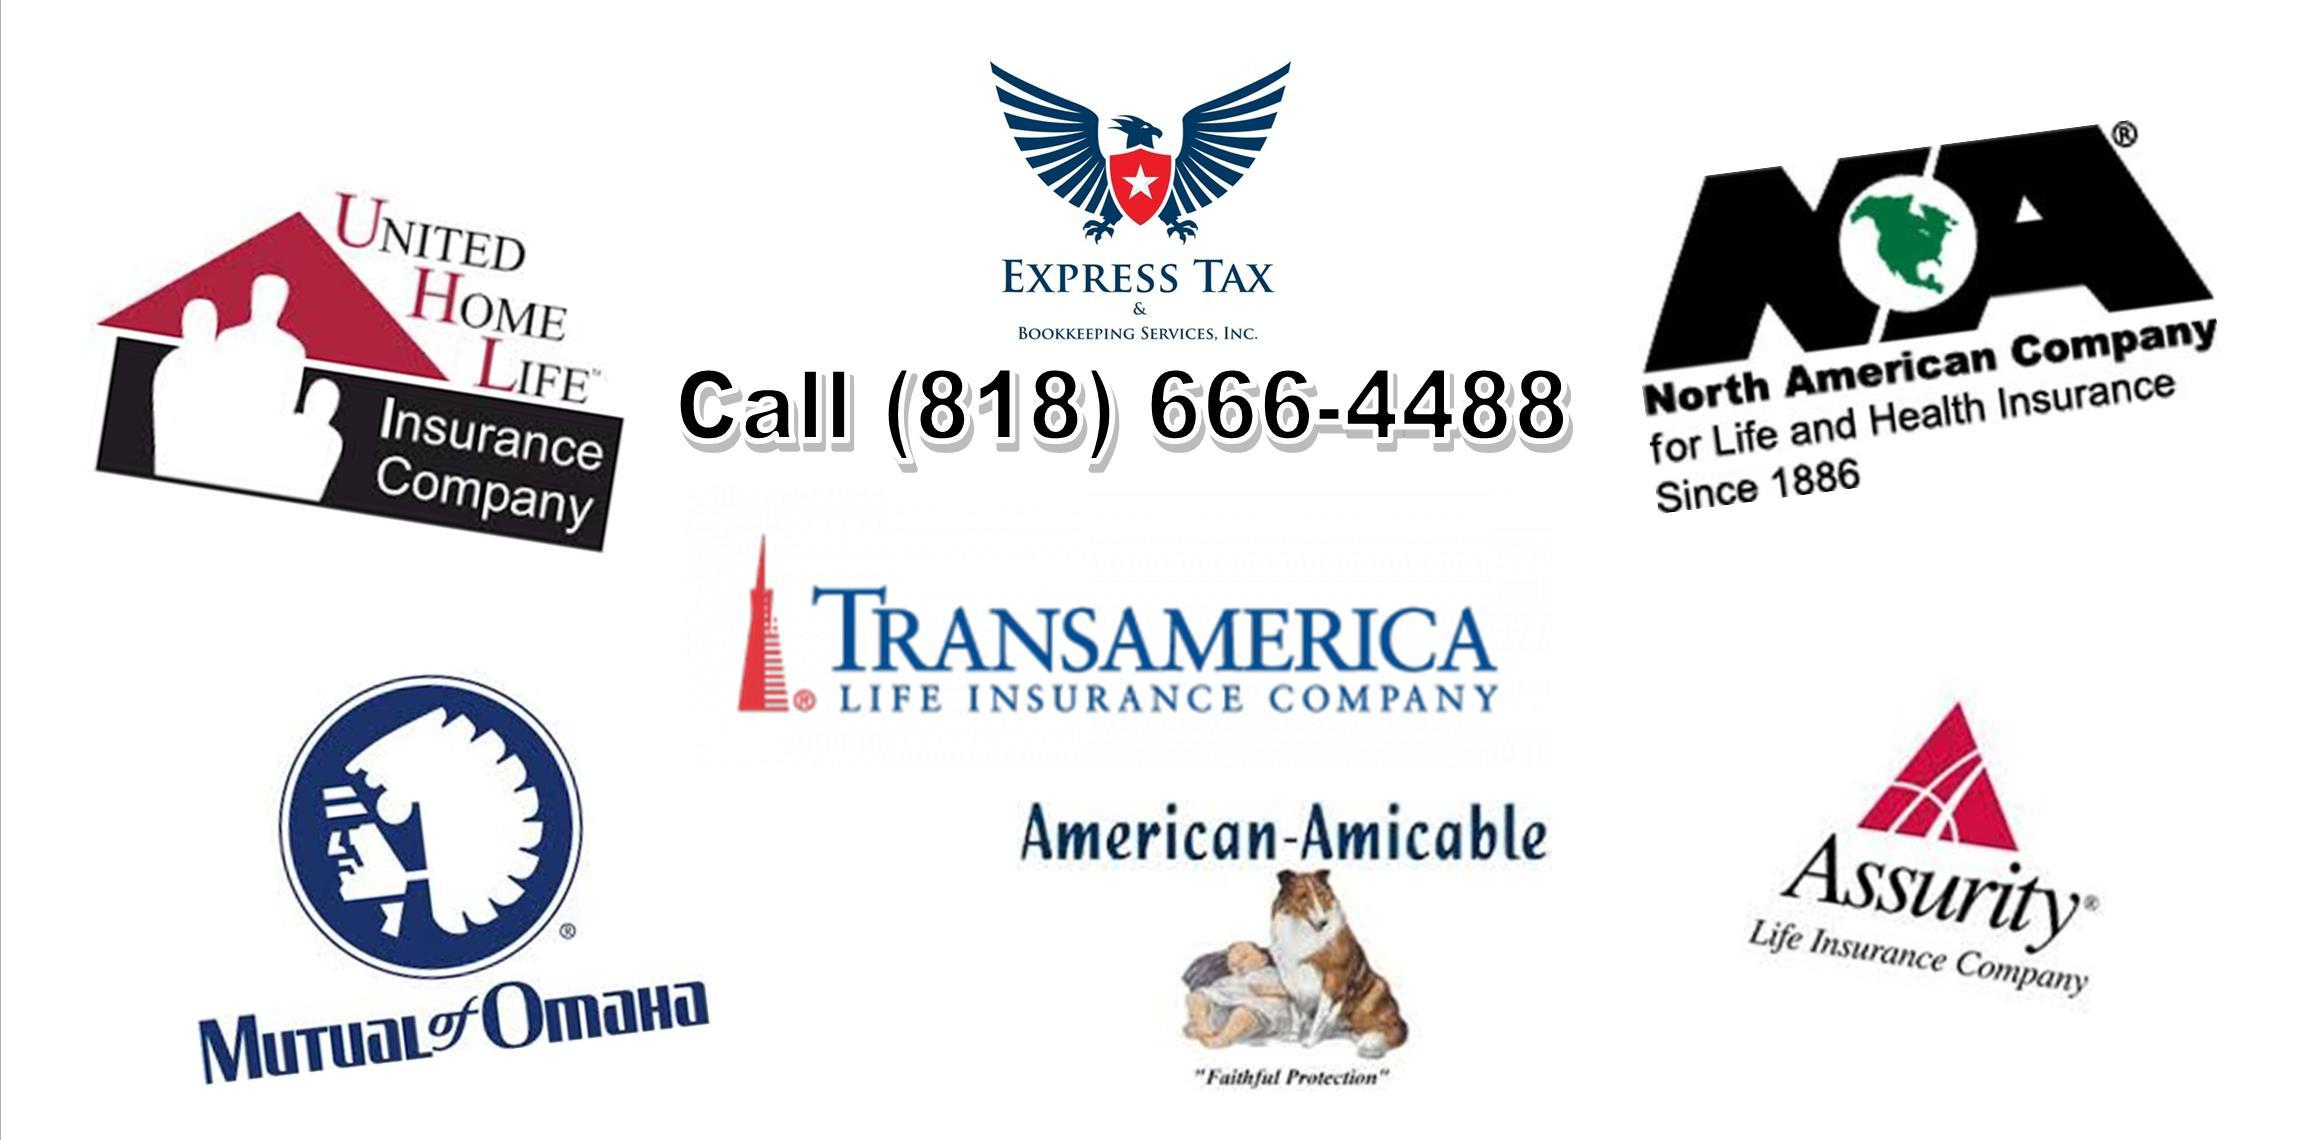 Express Tax & Bookkeeping Services, INC.